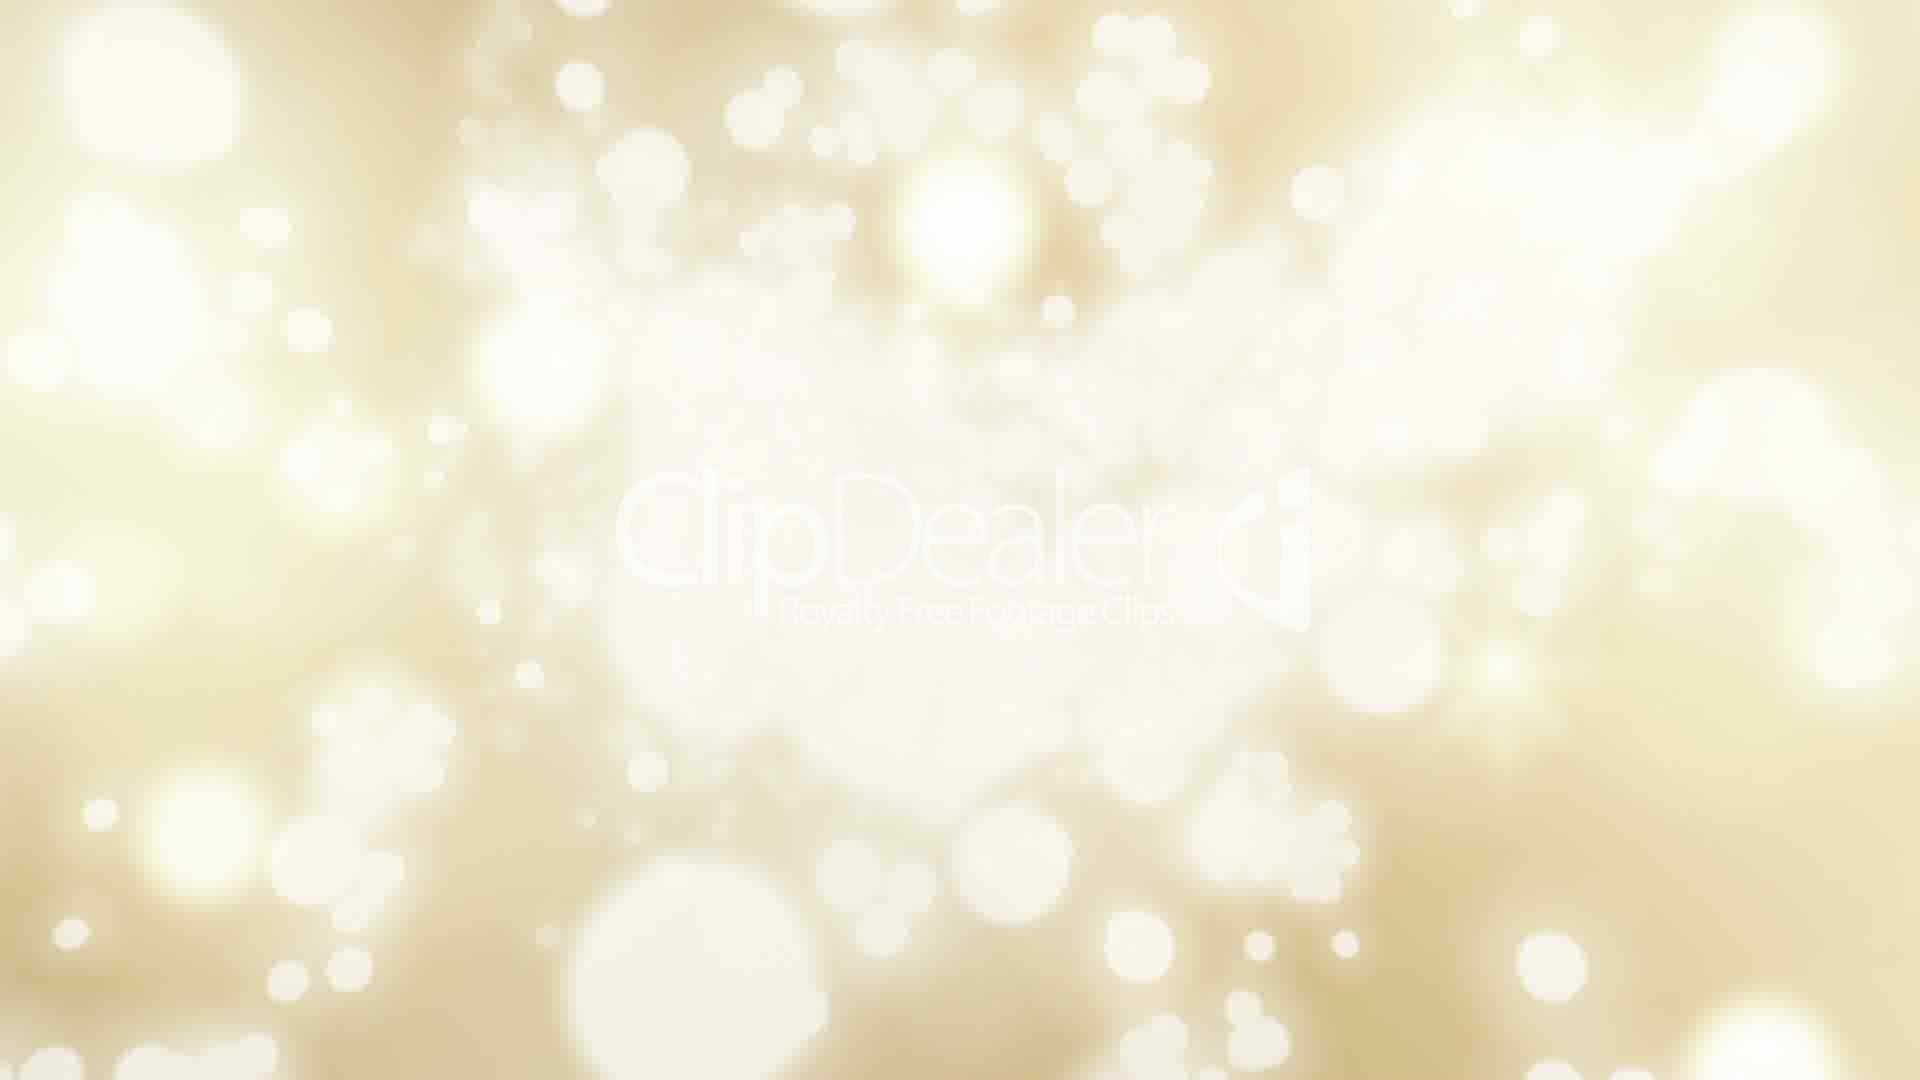 1920x1080 awesome Yellow Background D Abstract Pinterest | HD Wallpapers | Pinterest  | Yellow background, Iphone wallpaper yellow and Sparkles background